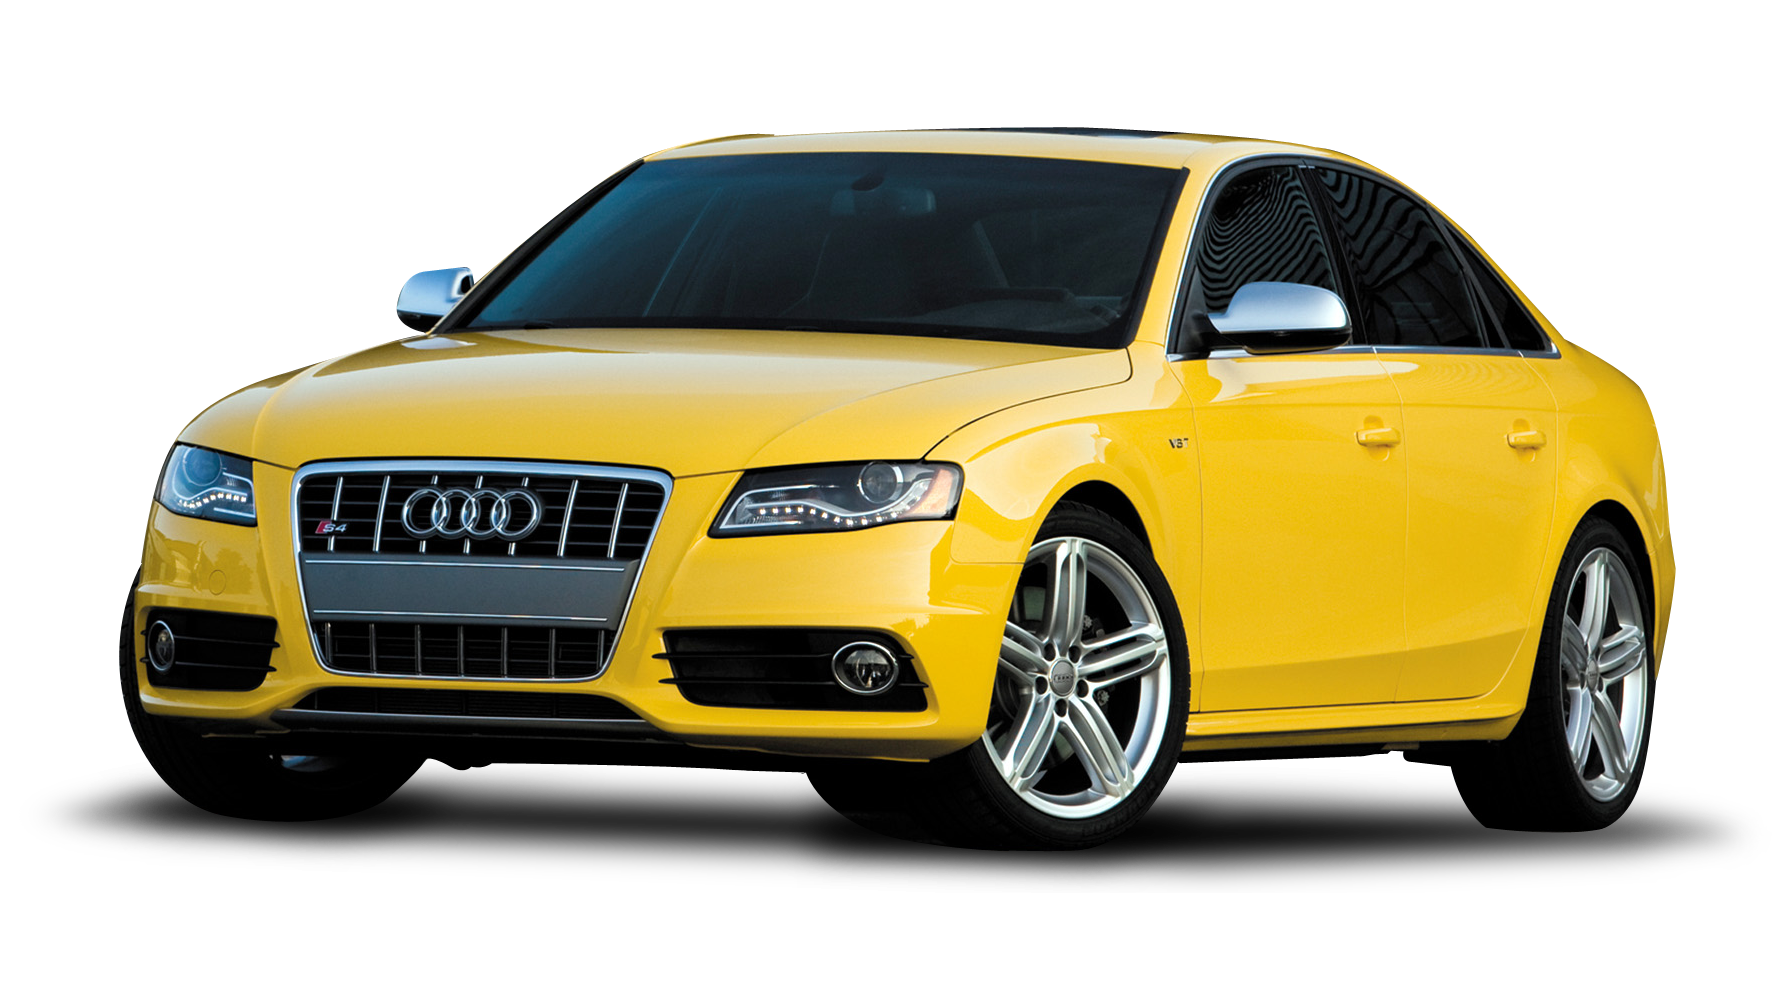 Yellow Audi Car PNG image - Car PNG